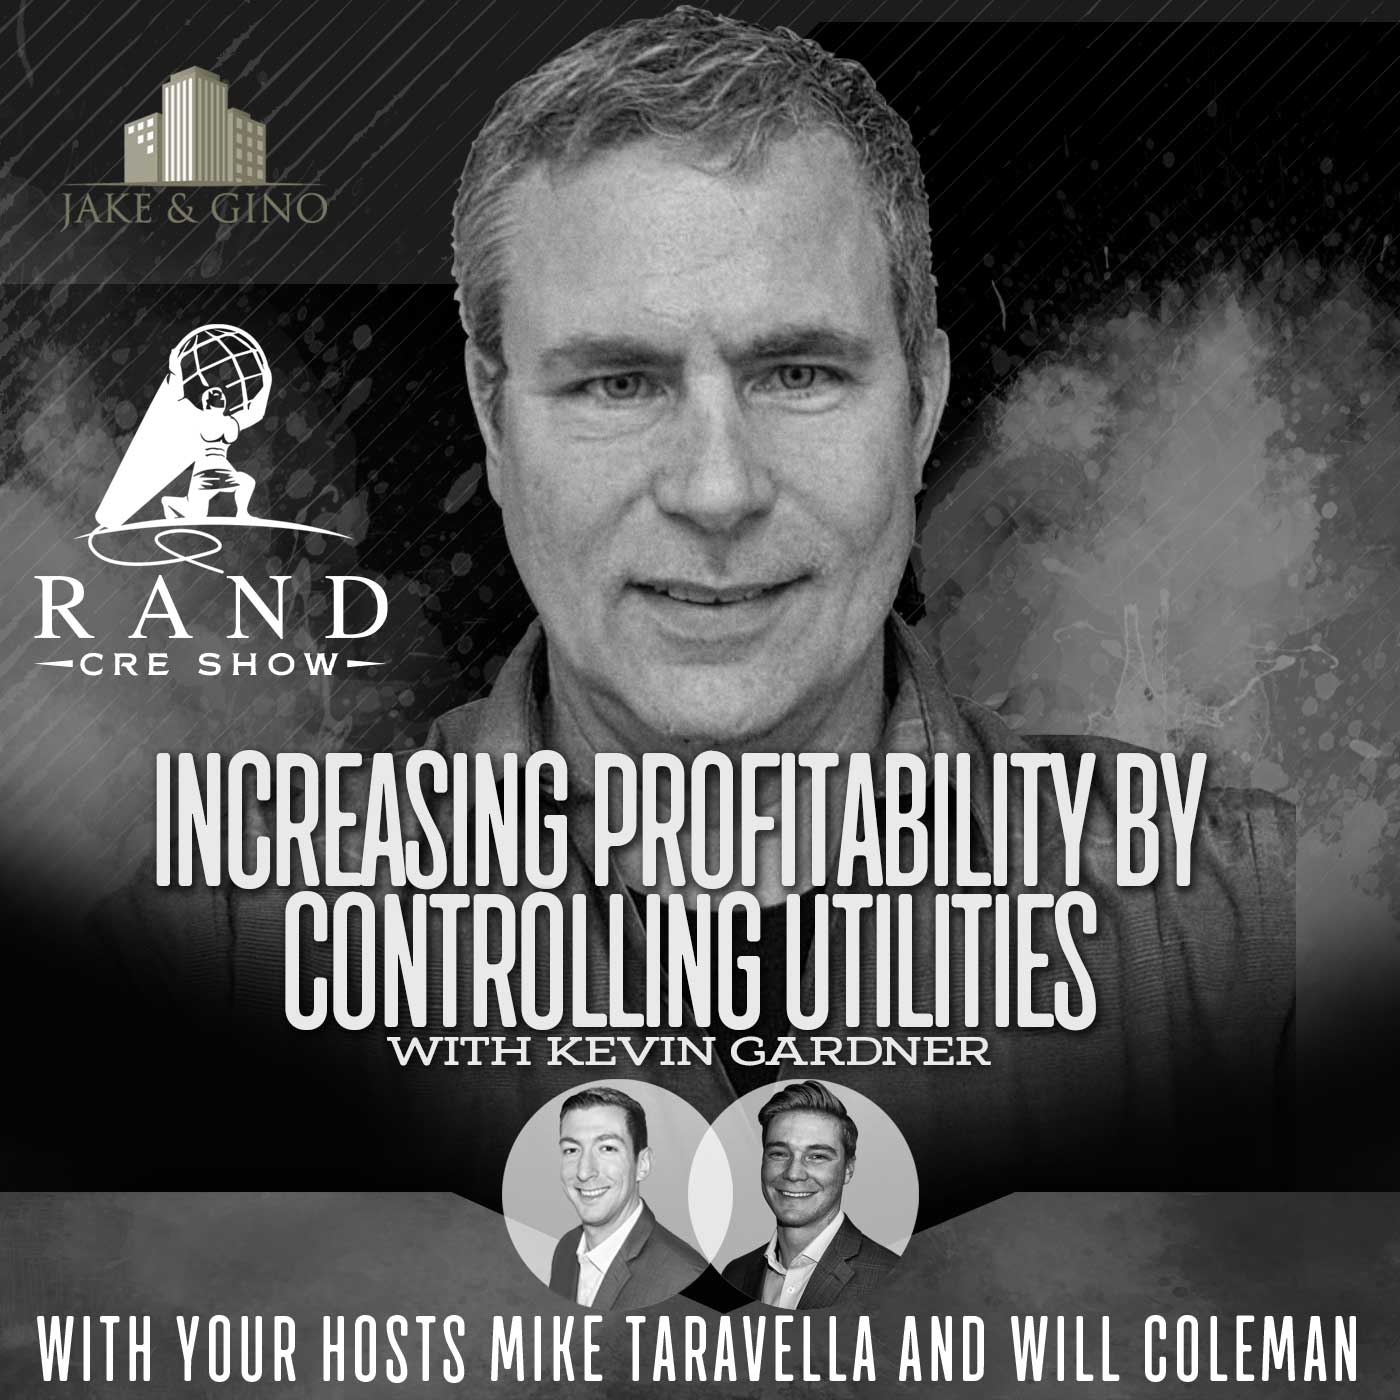 RCRE - Increasing Profitability by Controlling Utilities with Kevin Gardner